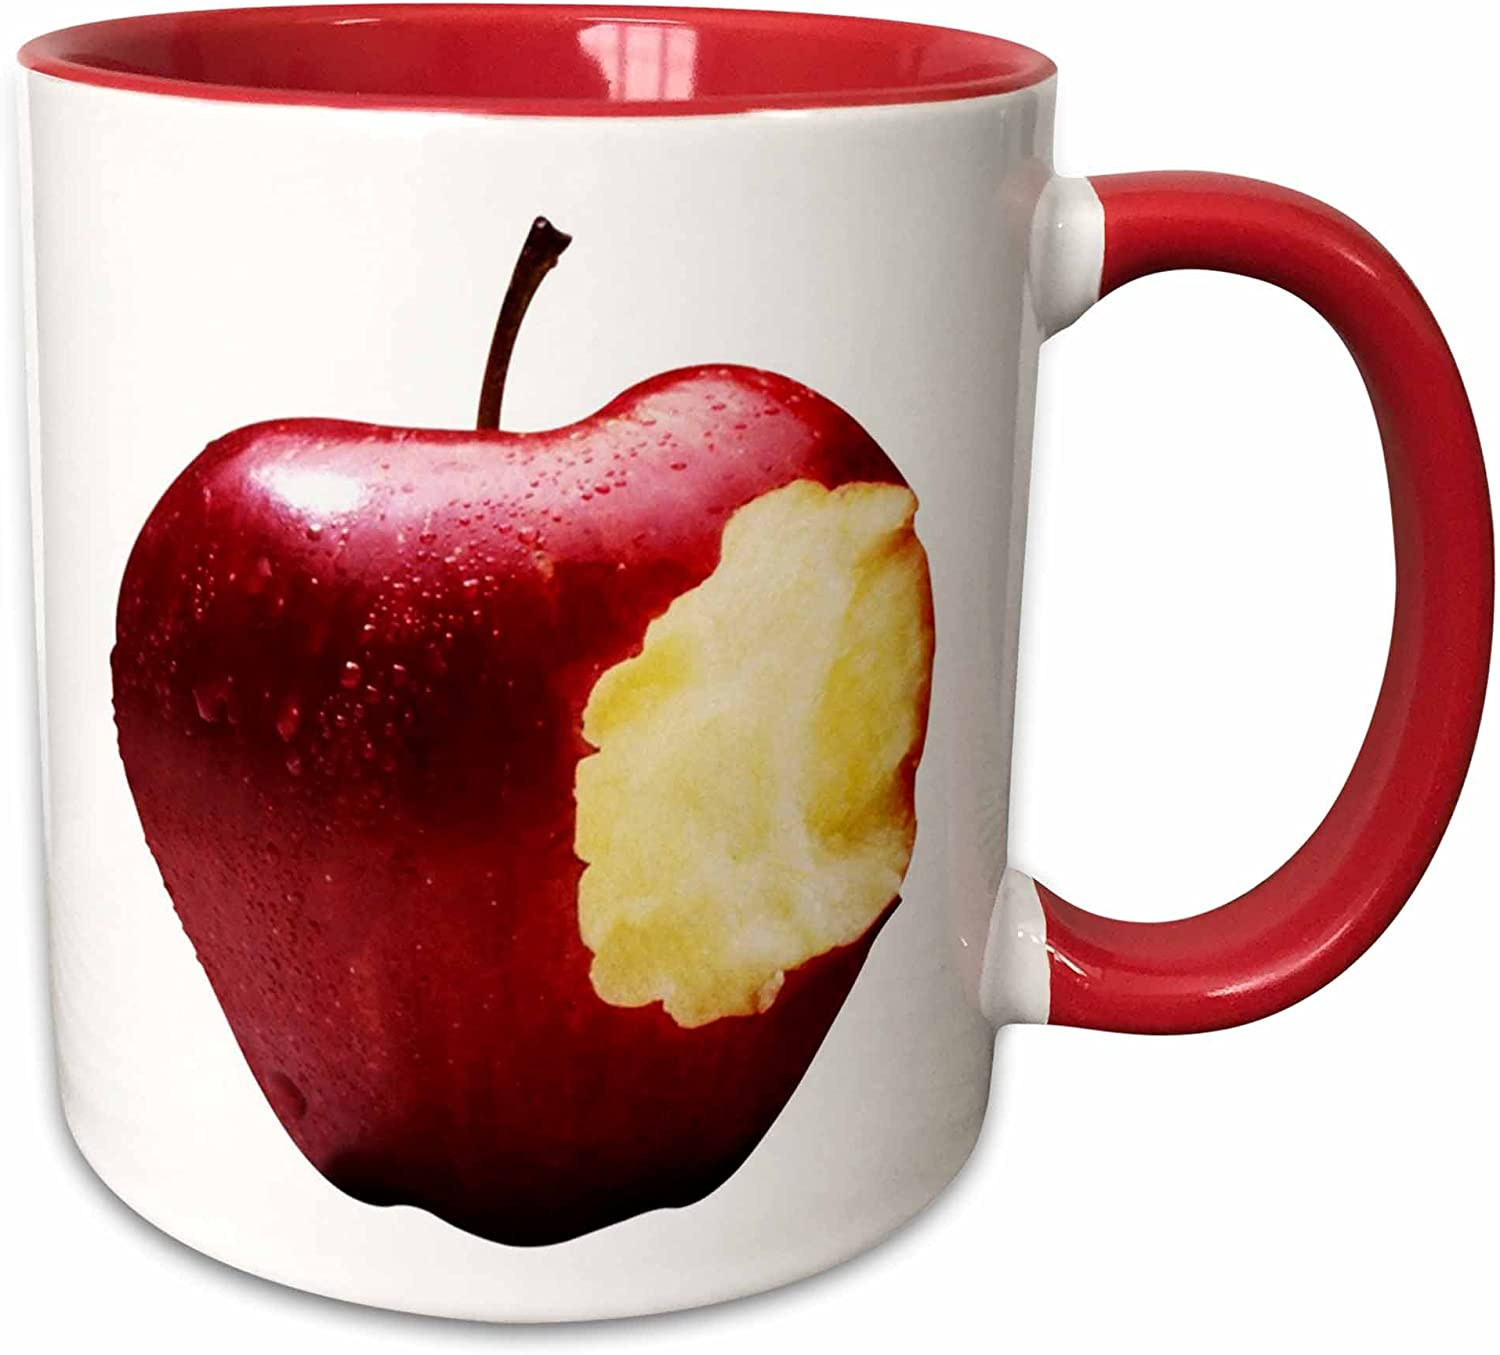 3dRose Big Apple Ceramic Mug, 11 oz, Red/White